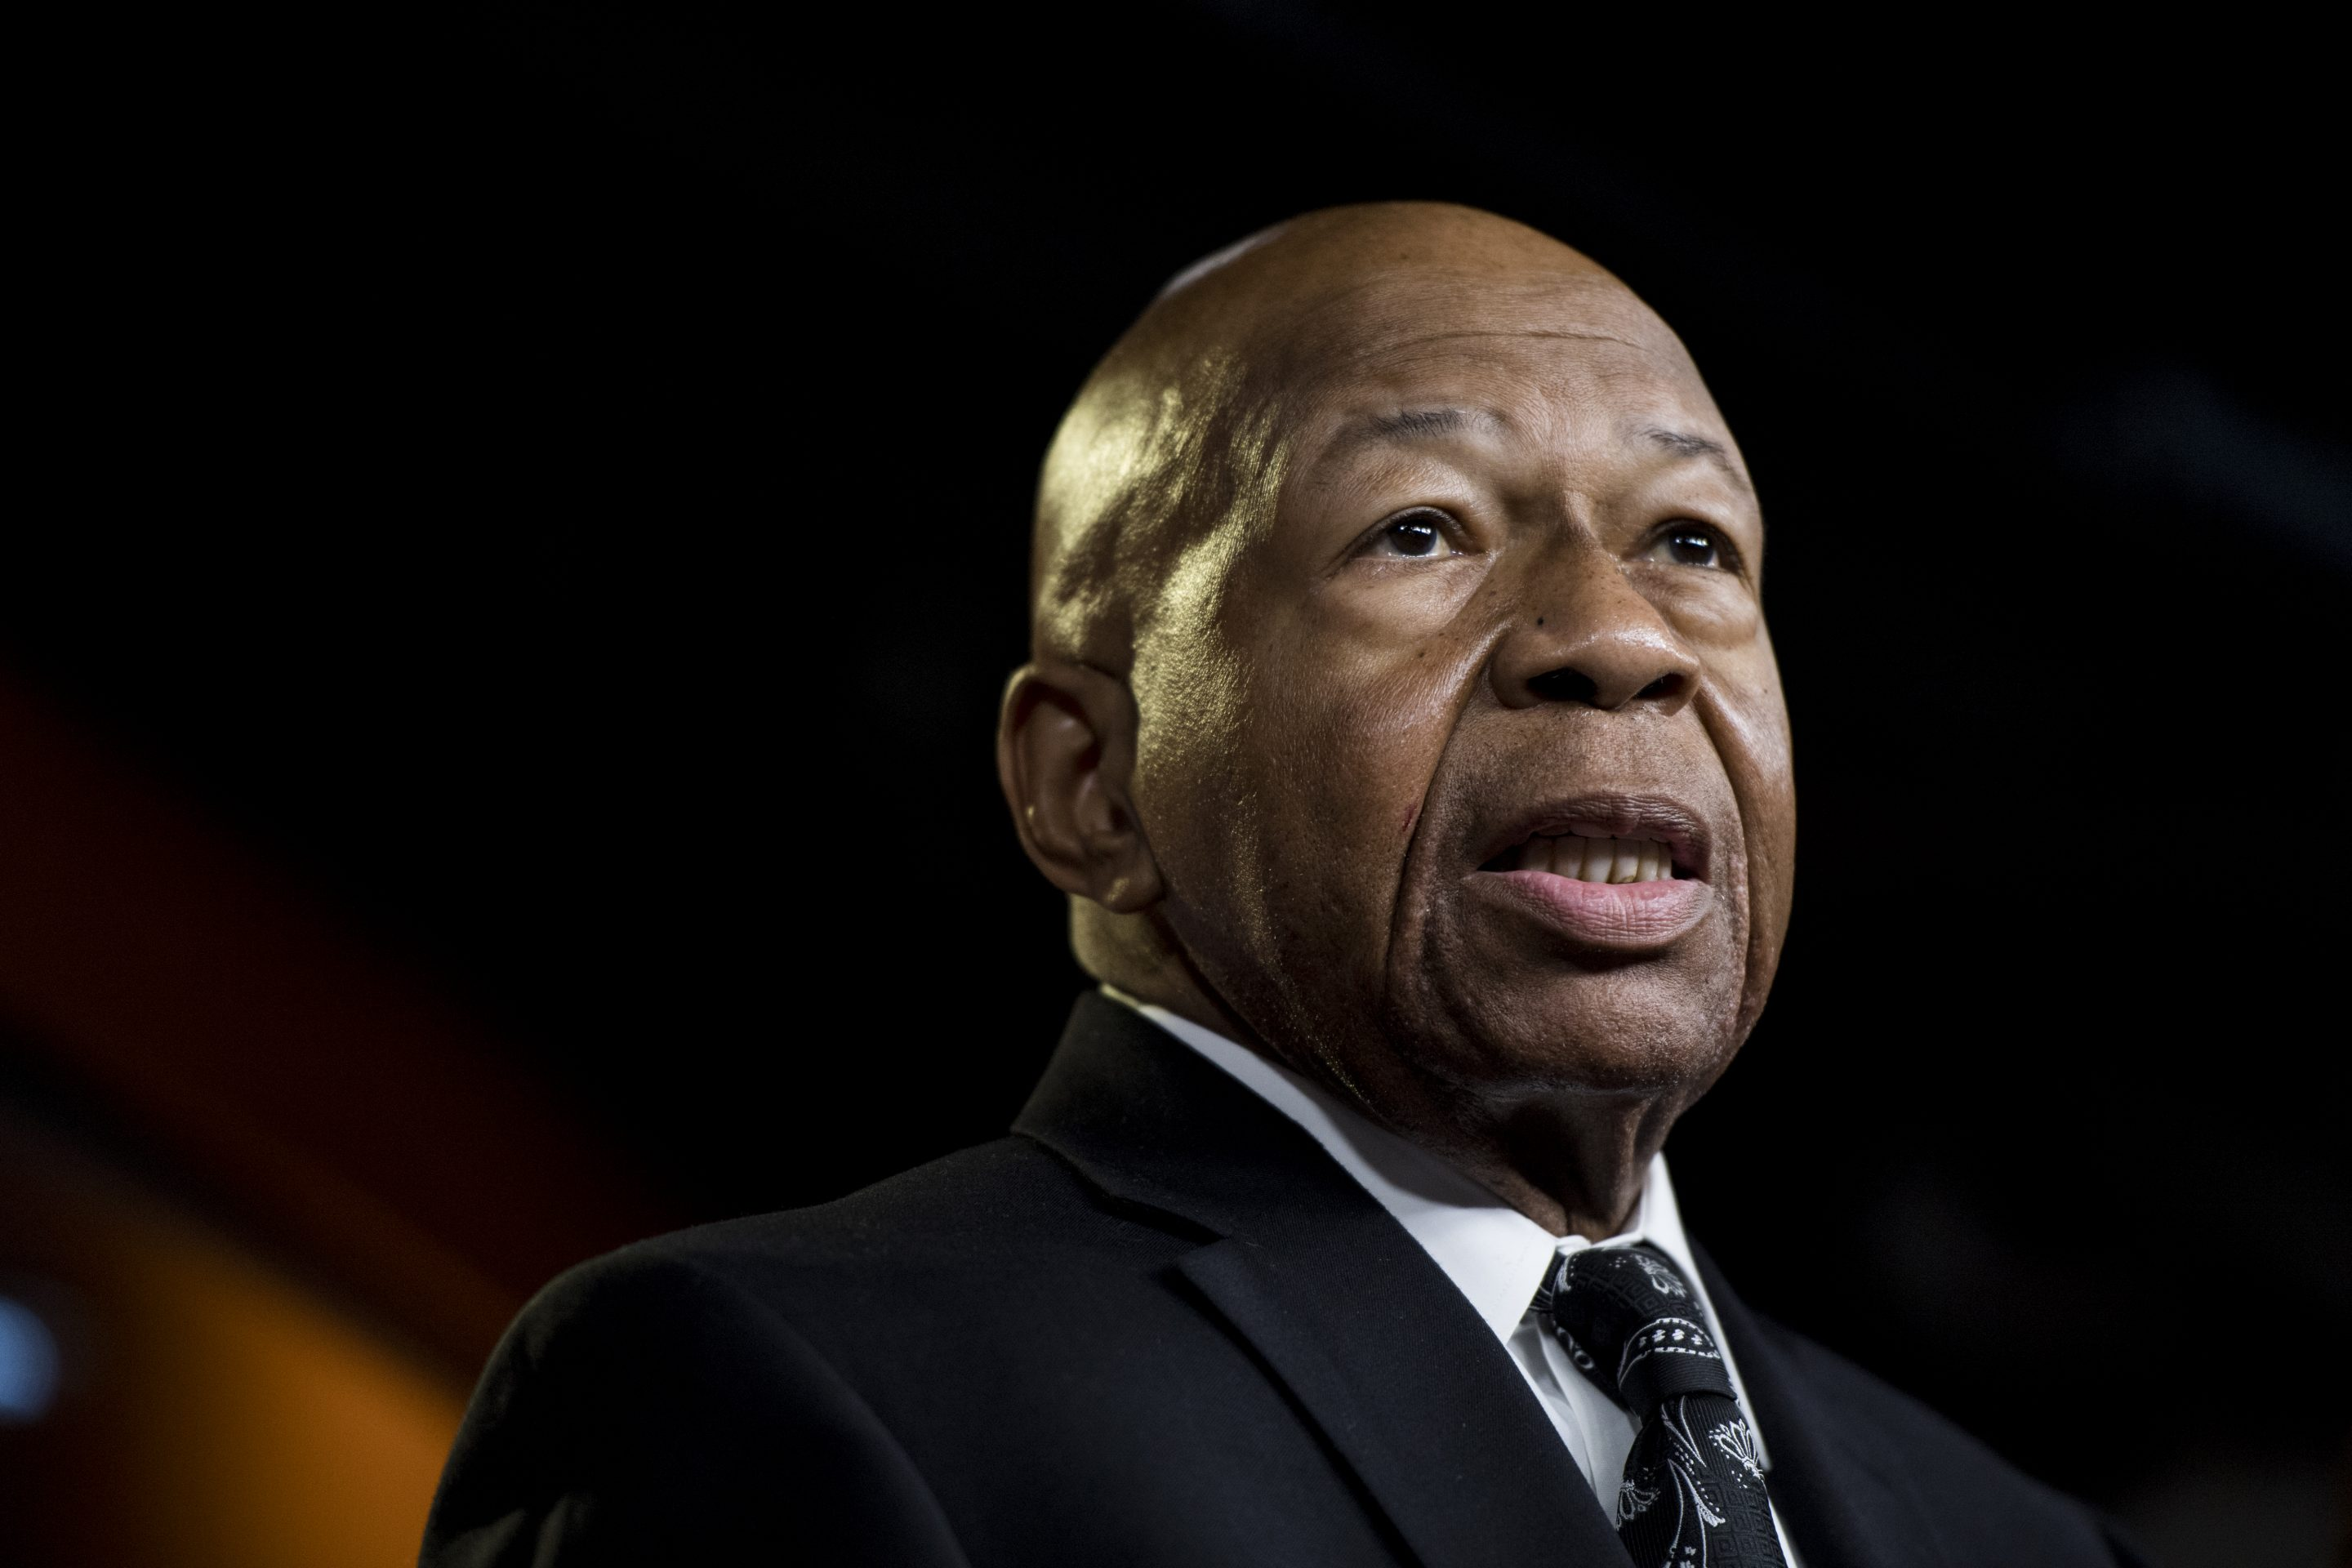 elijah cummings at presser june 2019